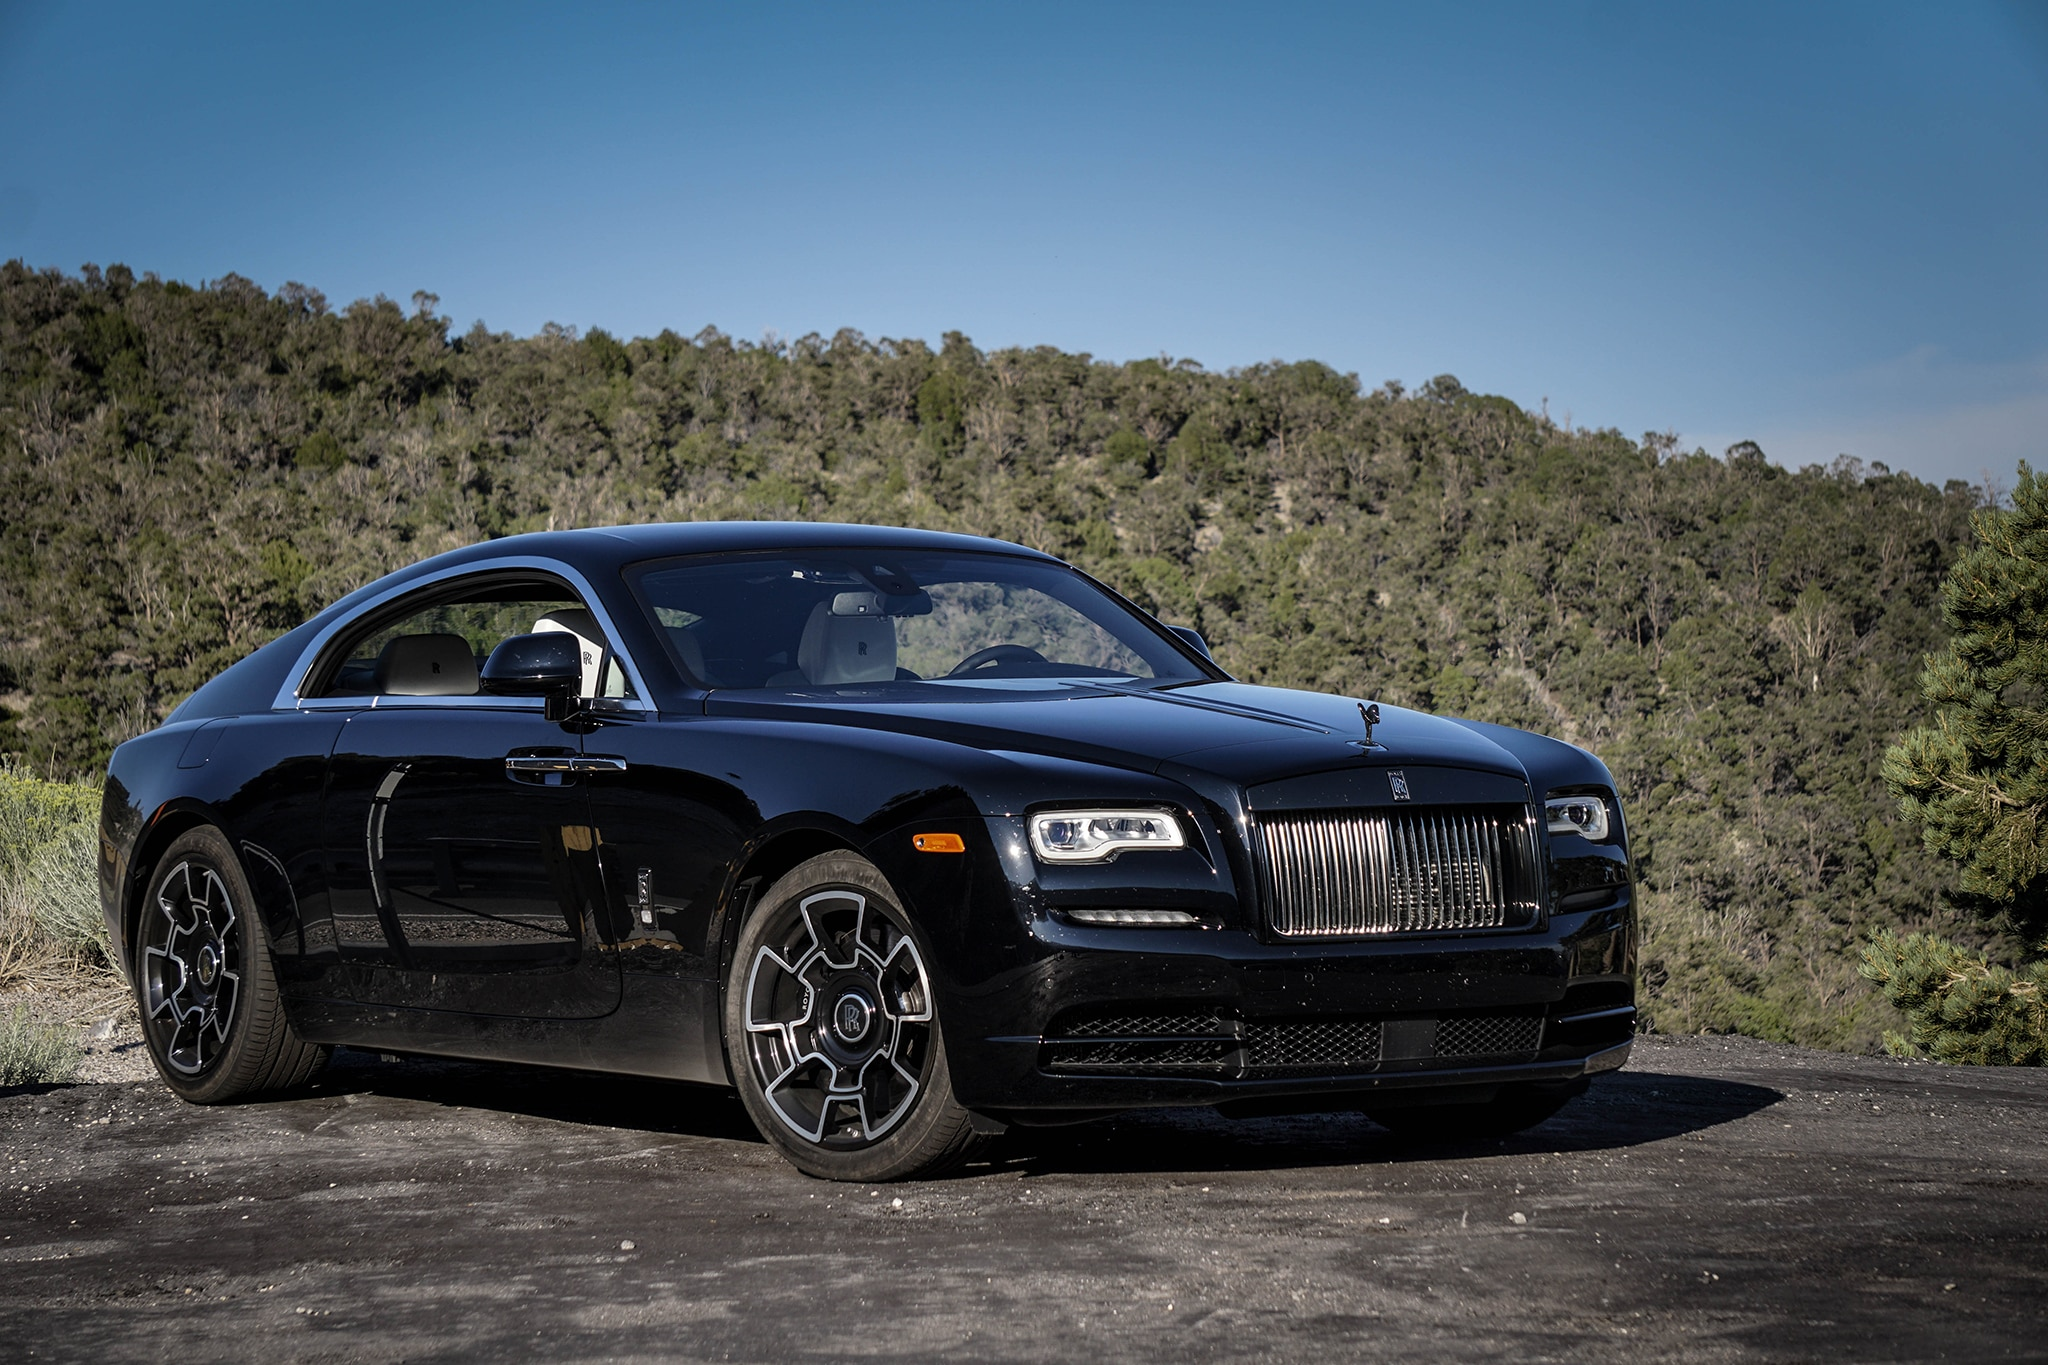 Rolls Royce Wraith Msrp >> 2017 Rolls-Royce Wraith Black Badge: 13 Things to Know